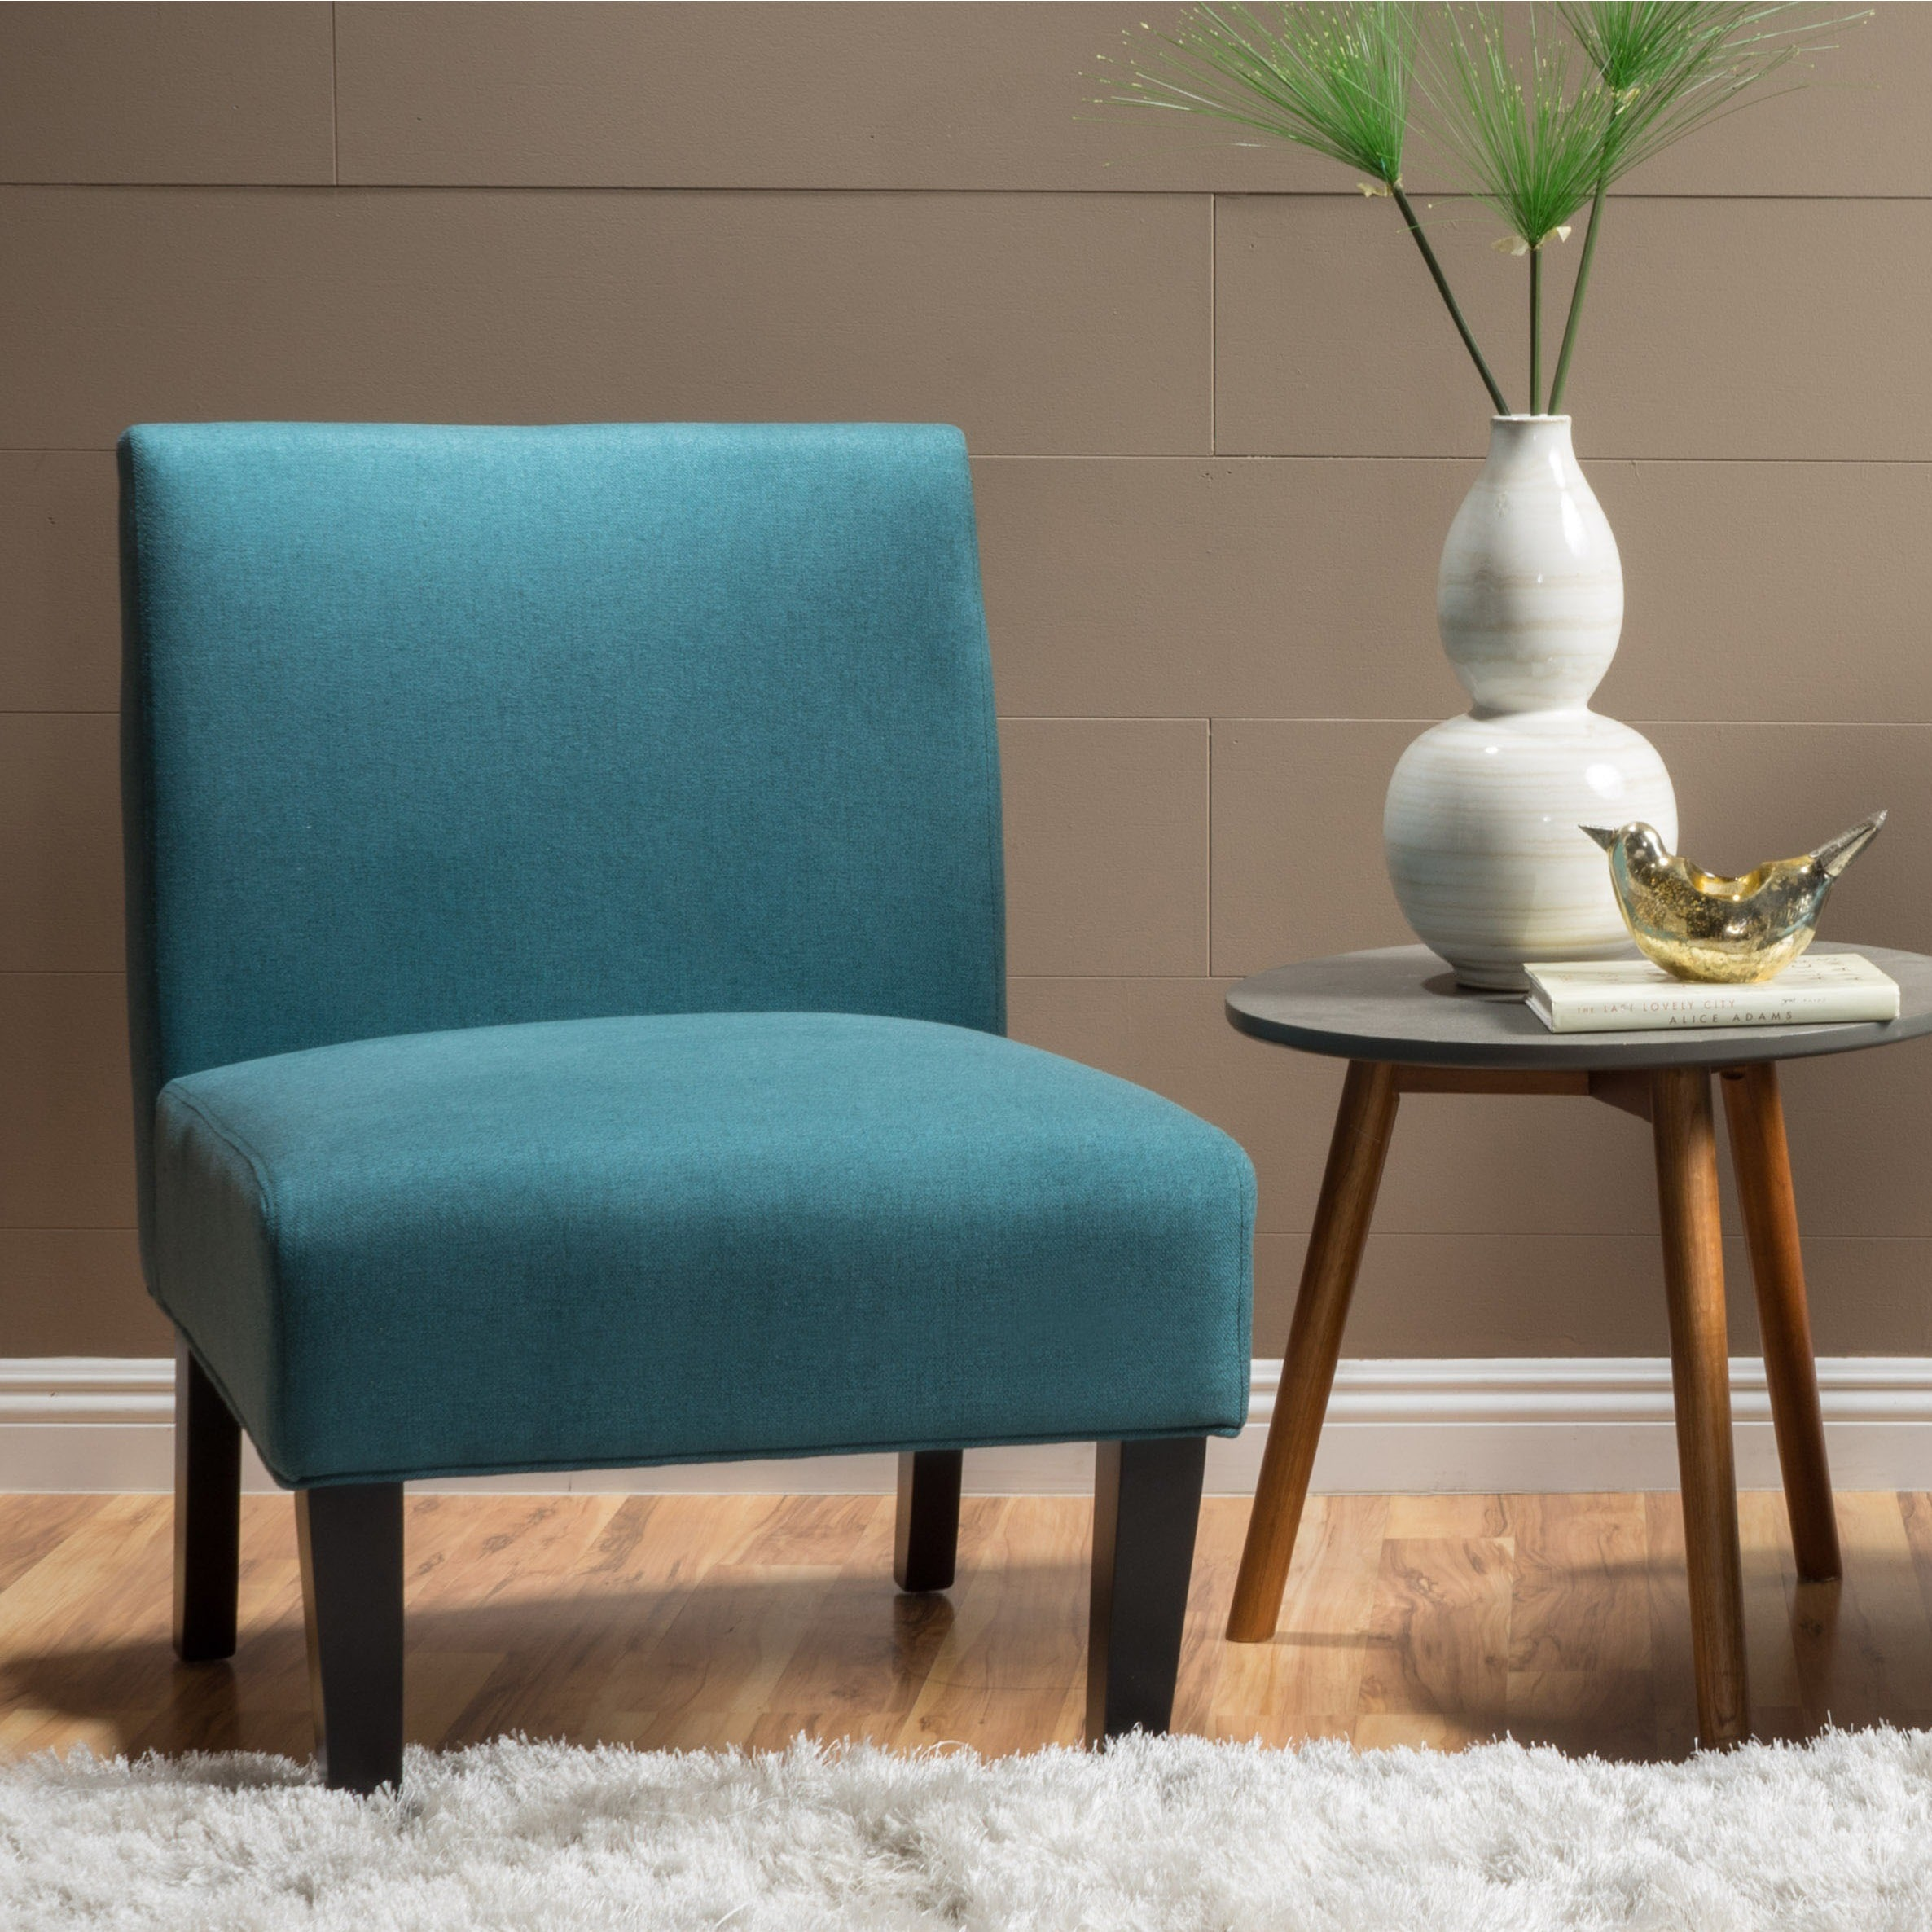 Awe Inspiring Accent Chair Home Decorating Styles Machost Co Dining Chair Design Ideas Machostcouk